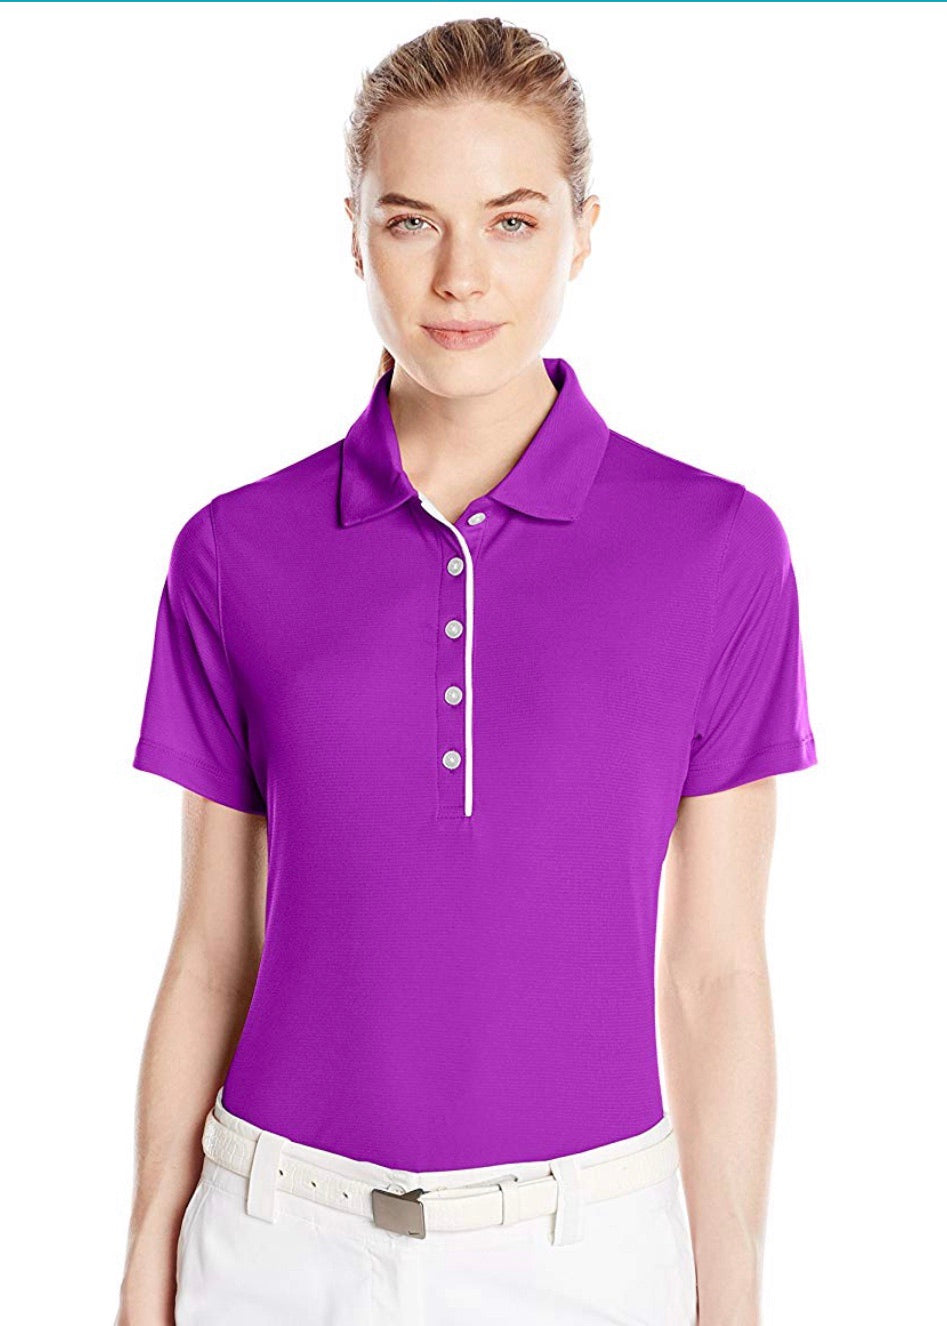 Cutter & Buck DryTec Darcy Polo LCK02548 Blackberry